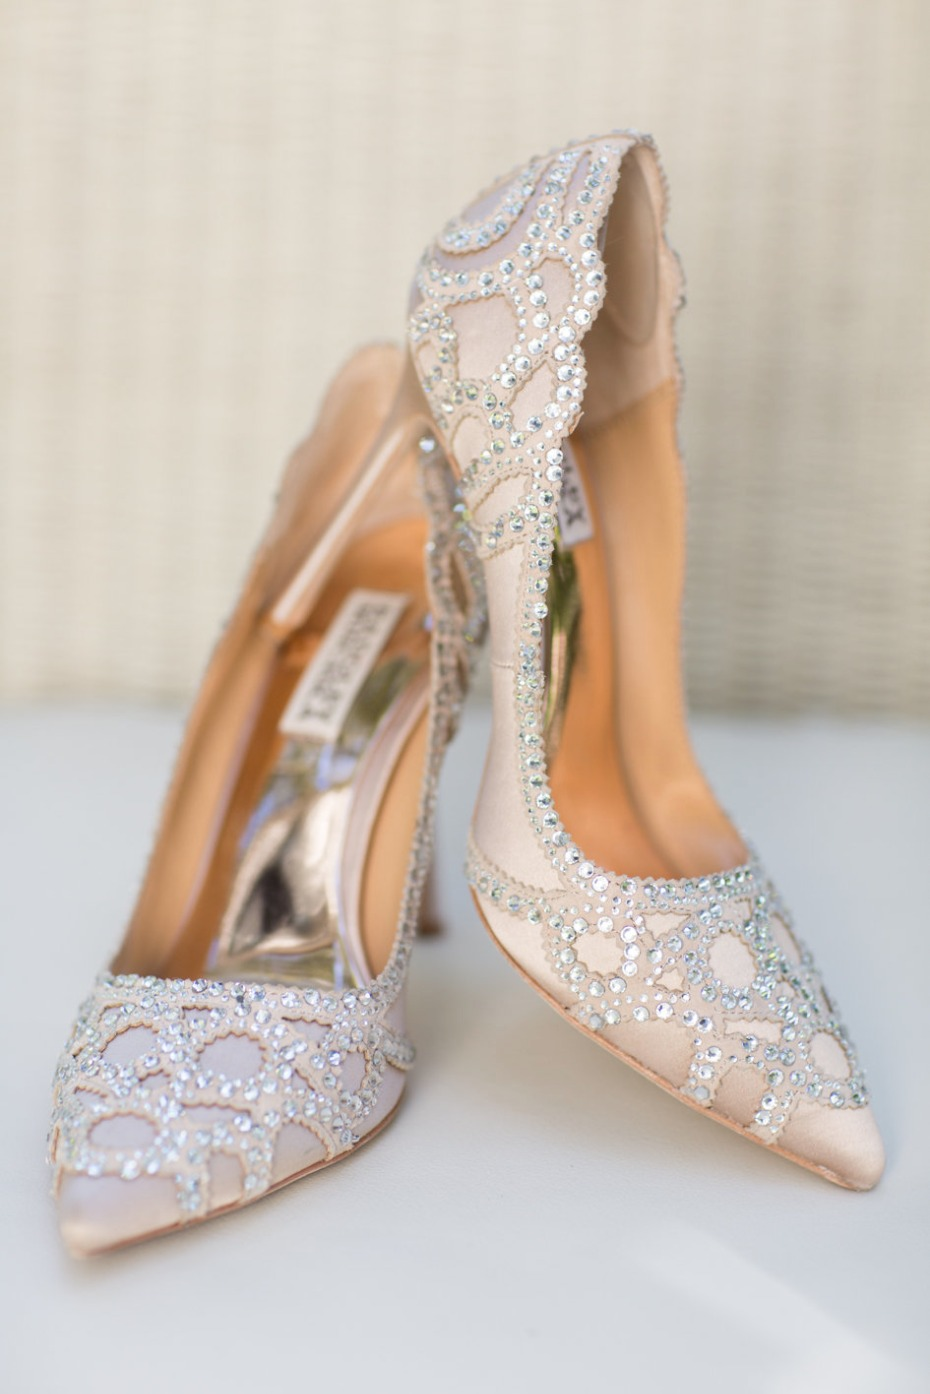 Sparkly heels for the bride